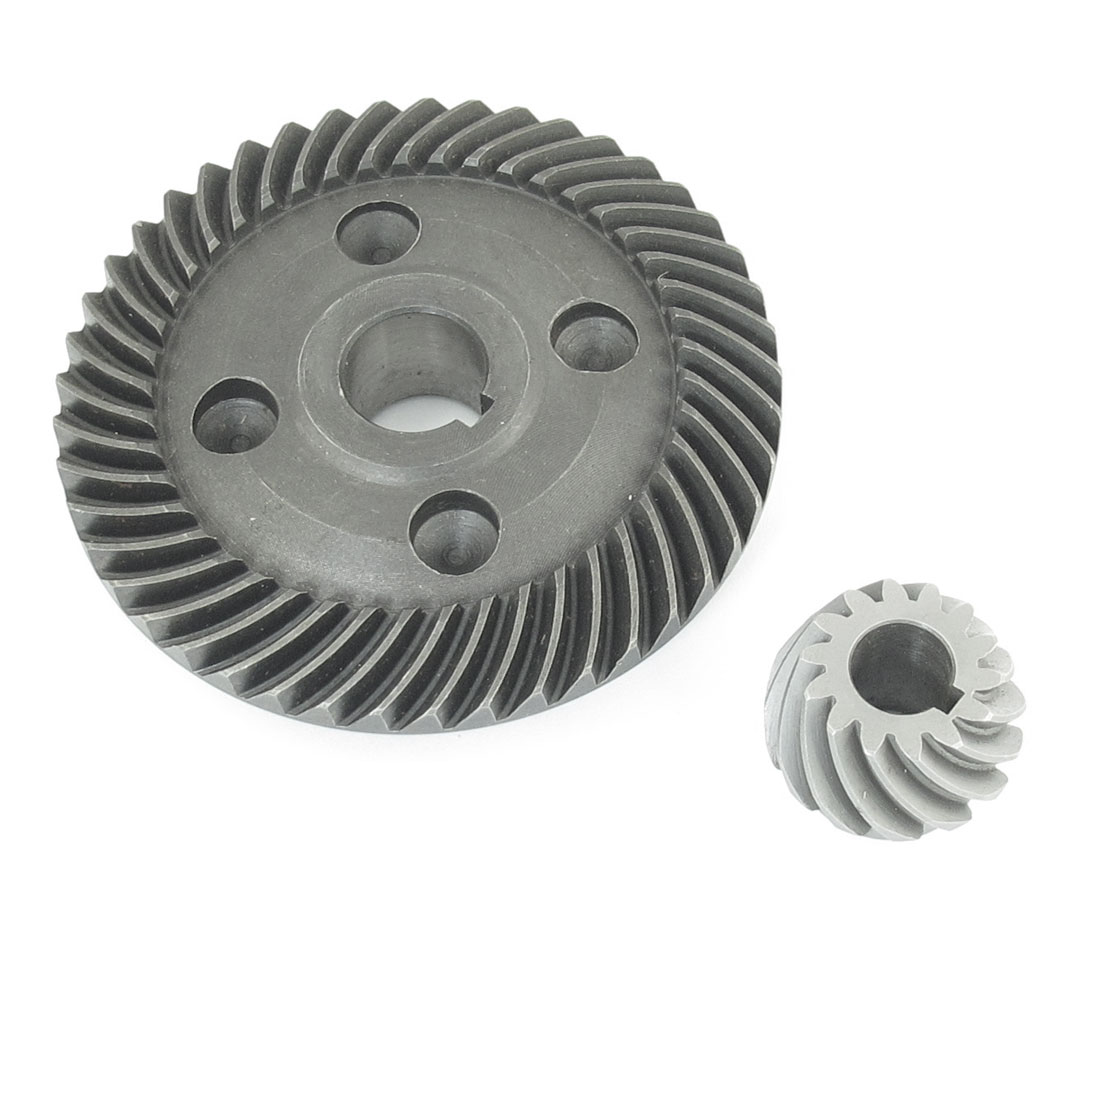 Electric Power Tool Spiral Bevel Gear Set for Hitachi 180 Angle Grinder